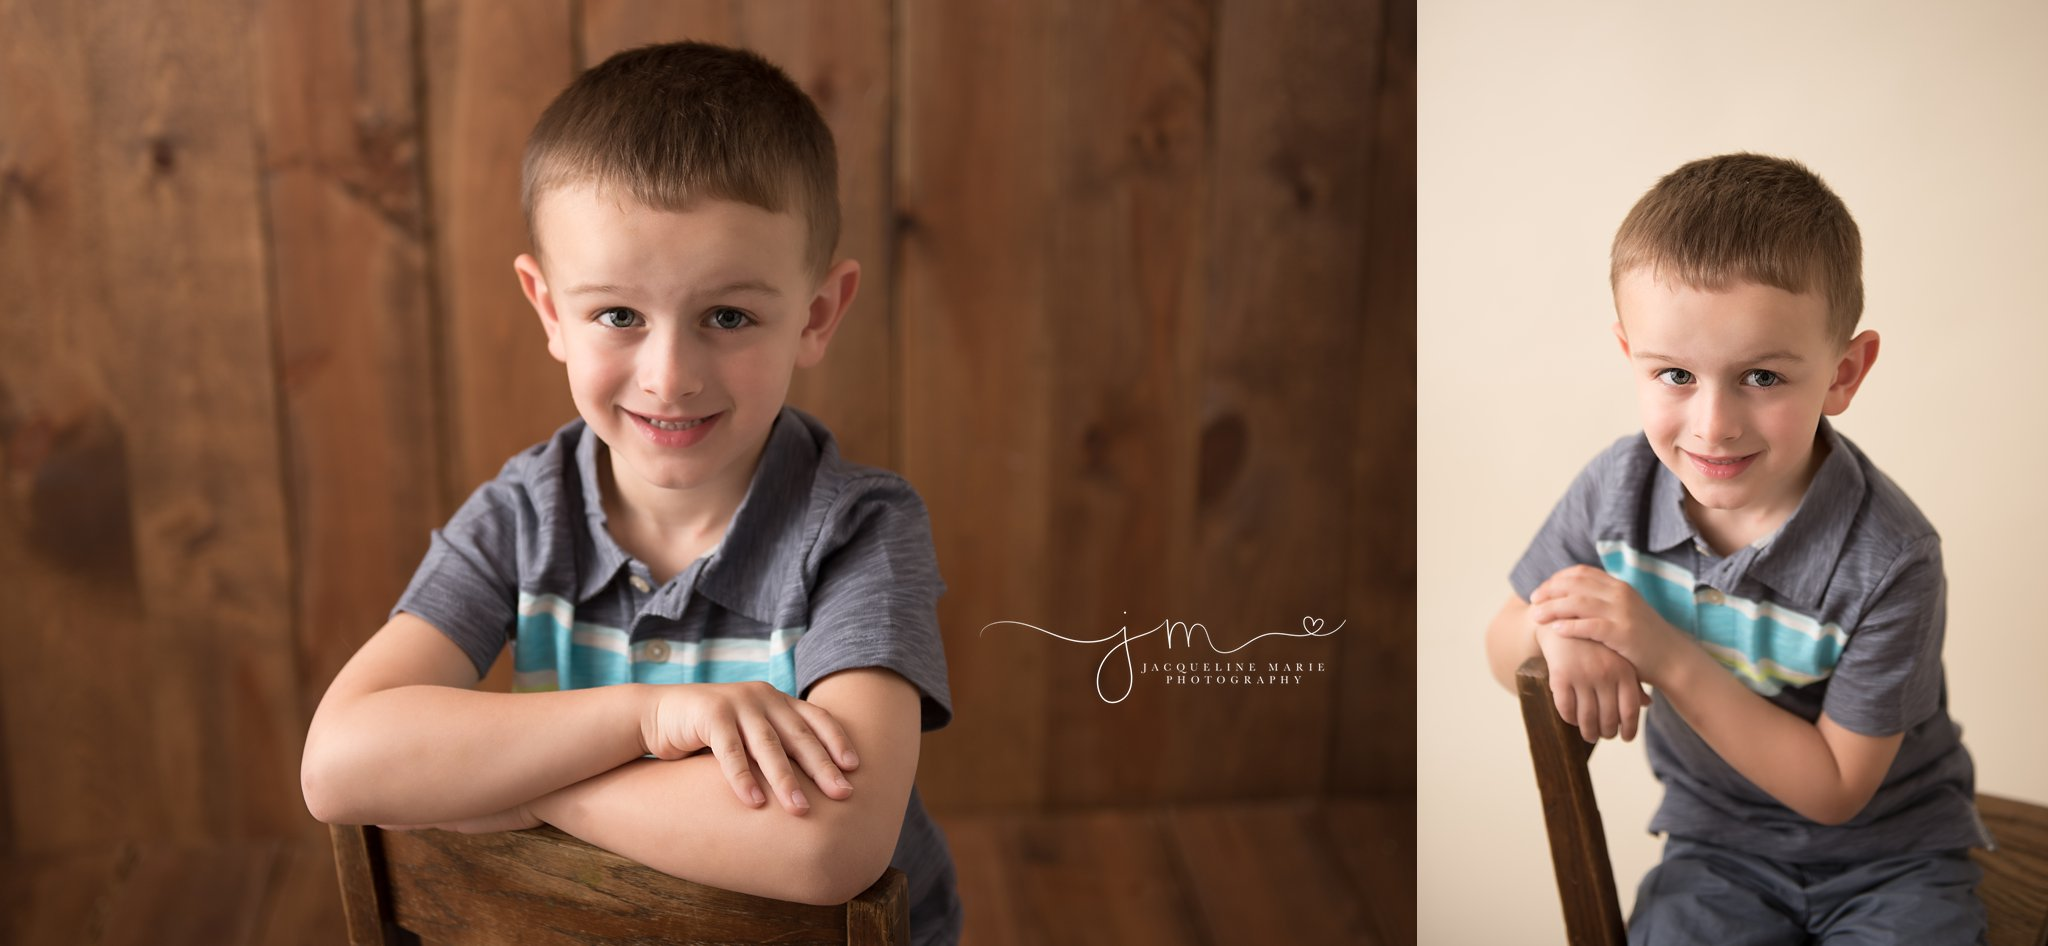 columbus ohio 5 year old boy wears striped polo while sitting on wood chair for milestone photography portraits by jacquekline marie photography